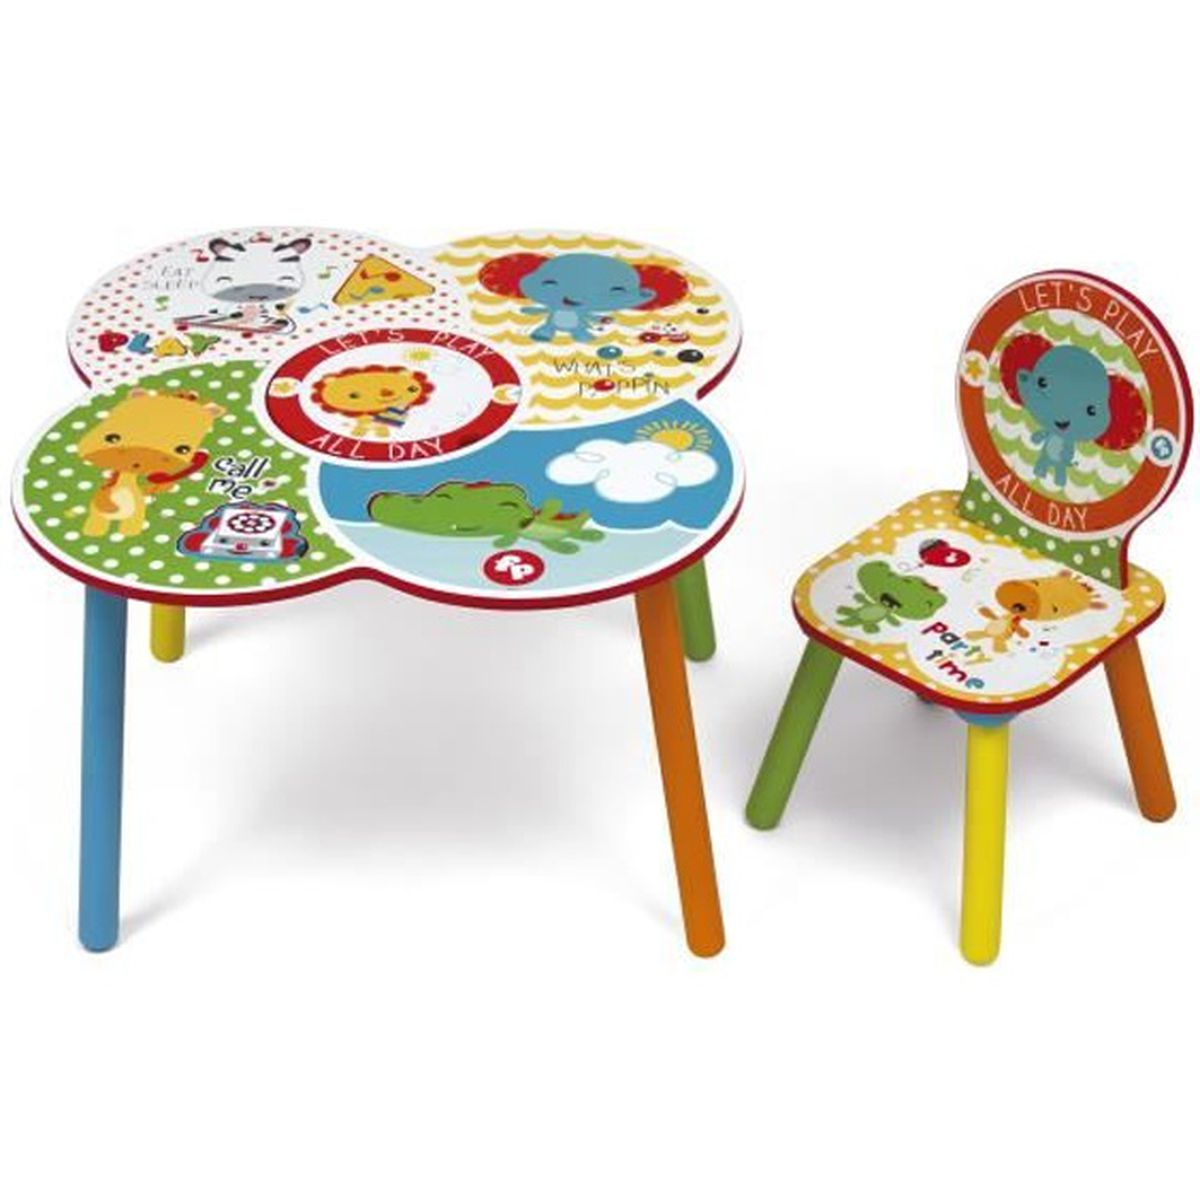 Chaise fisher price achat vente chaise fisher price pas cher cdiscount for Chaise 4 en 1 fisher price